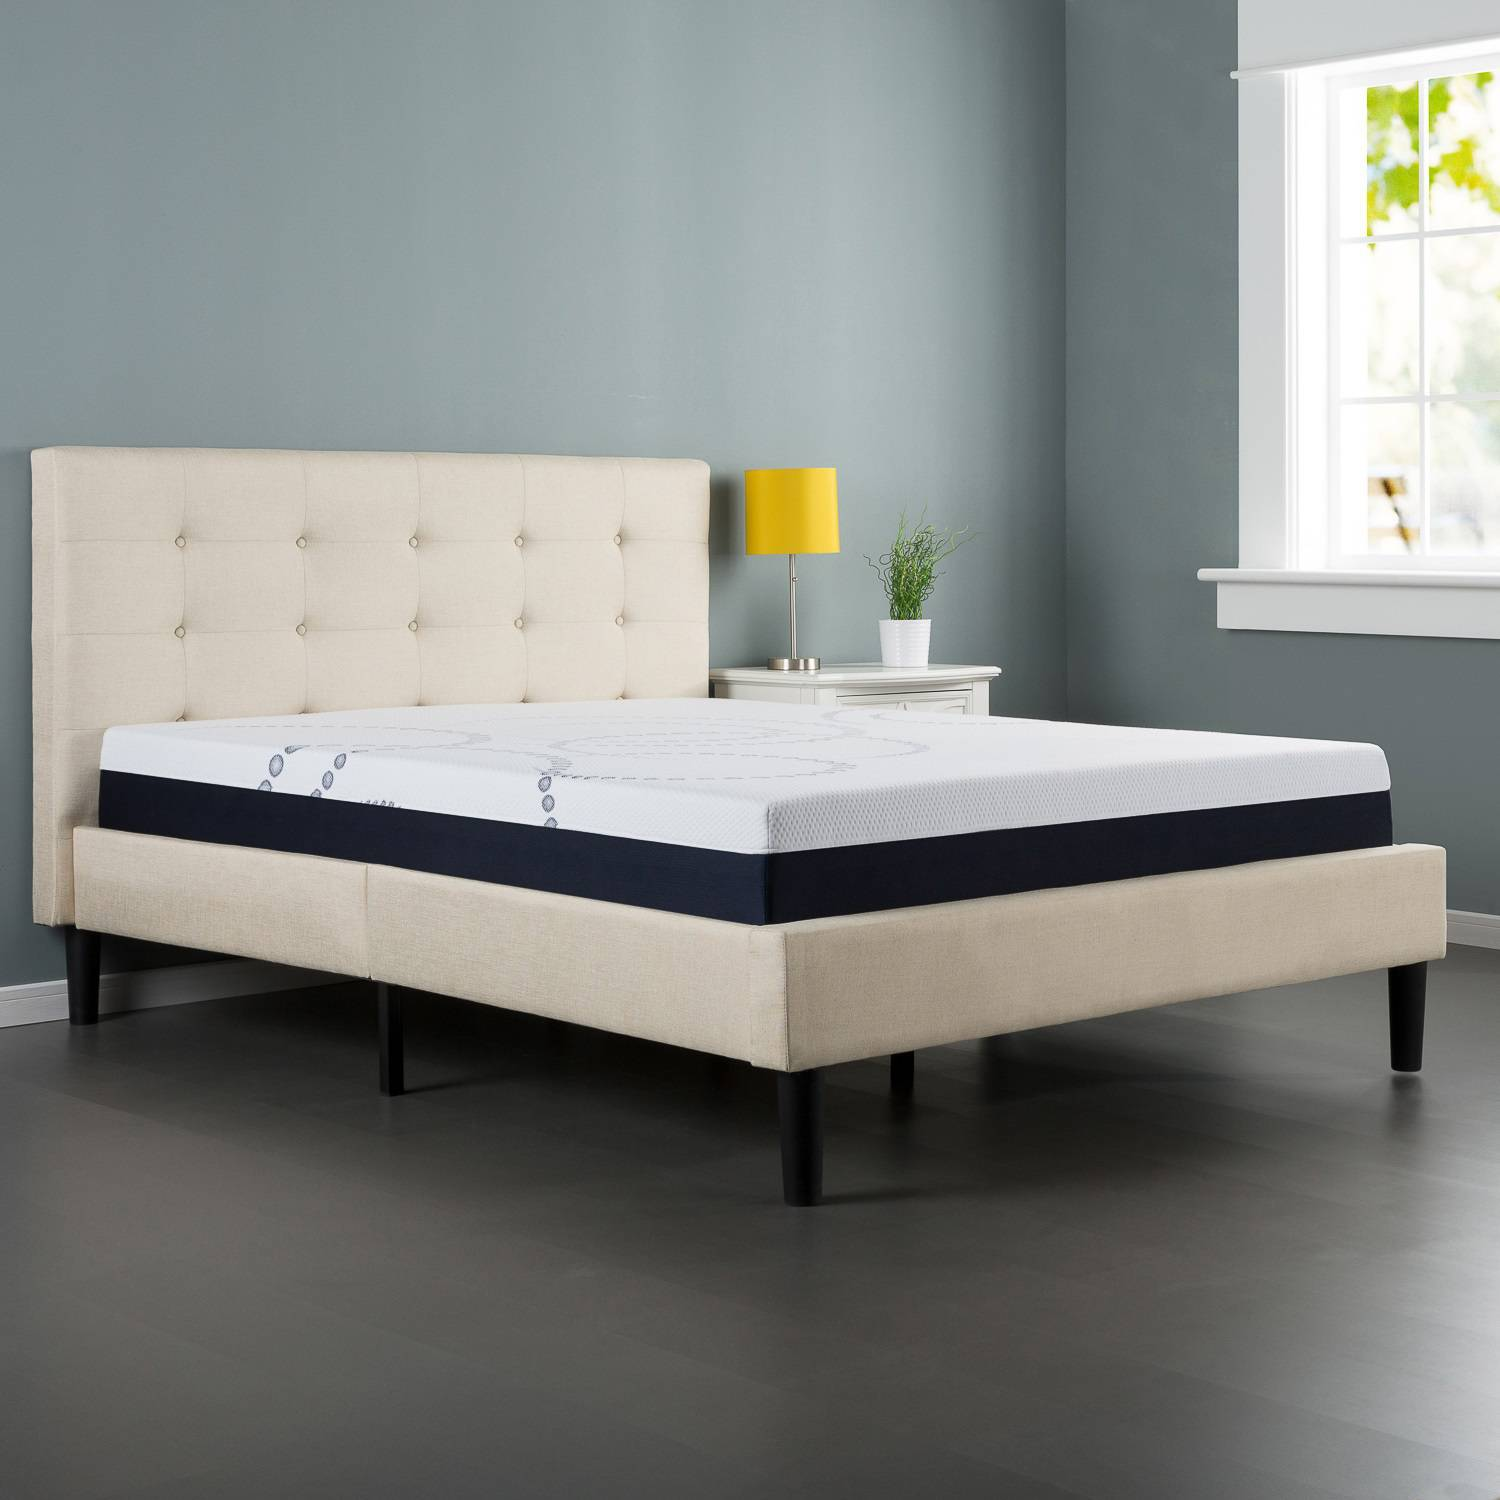 Zinus Ibidun 45 Upholstered Button Tufted Platform Bed With Wooden Slats Beige Full Walmart Com Walmart Com